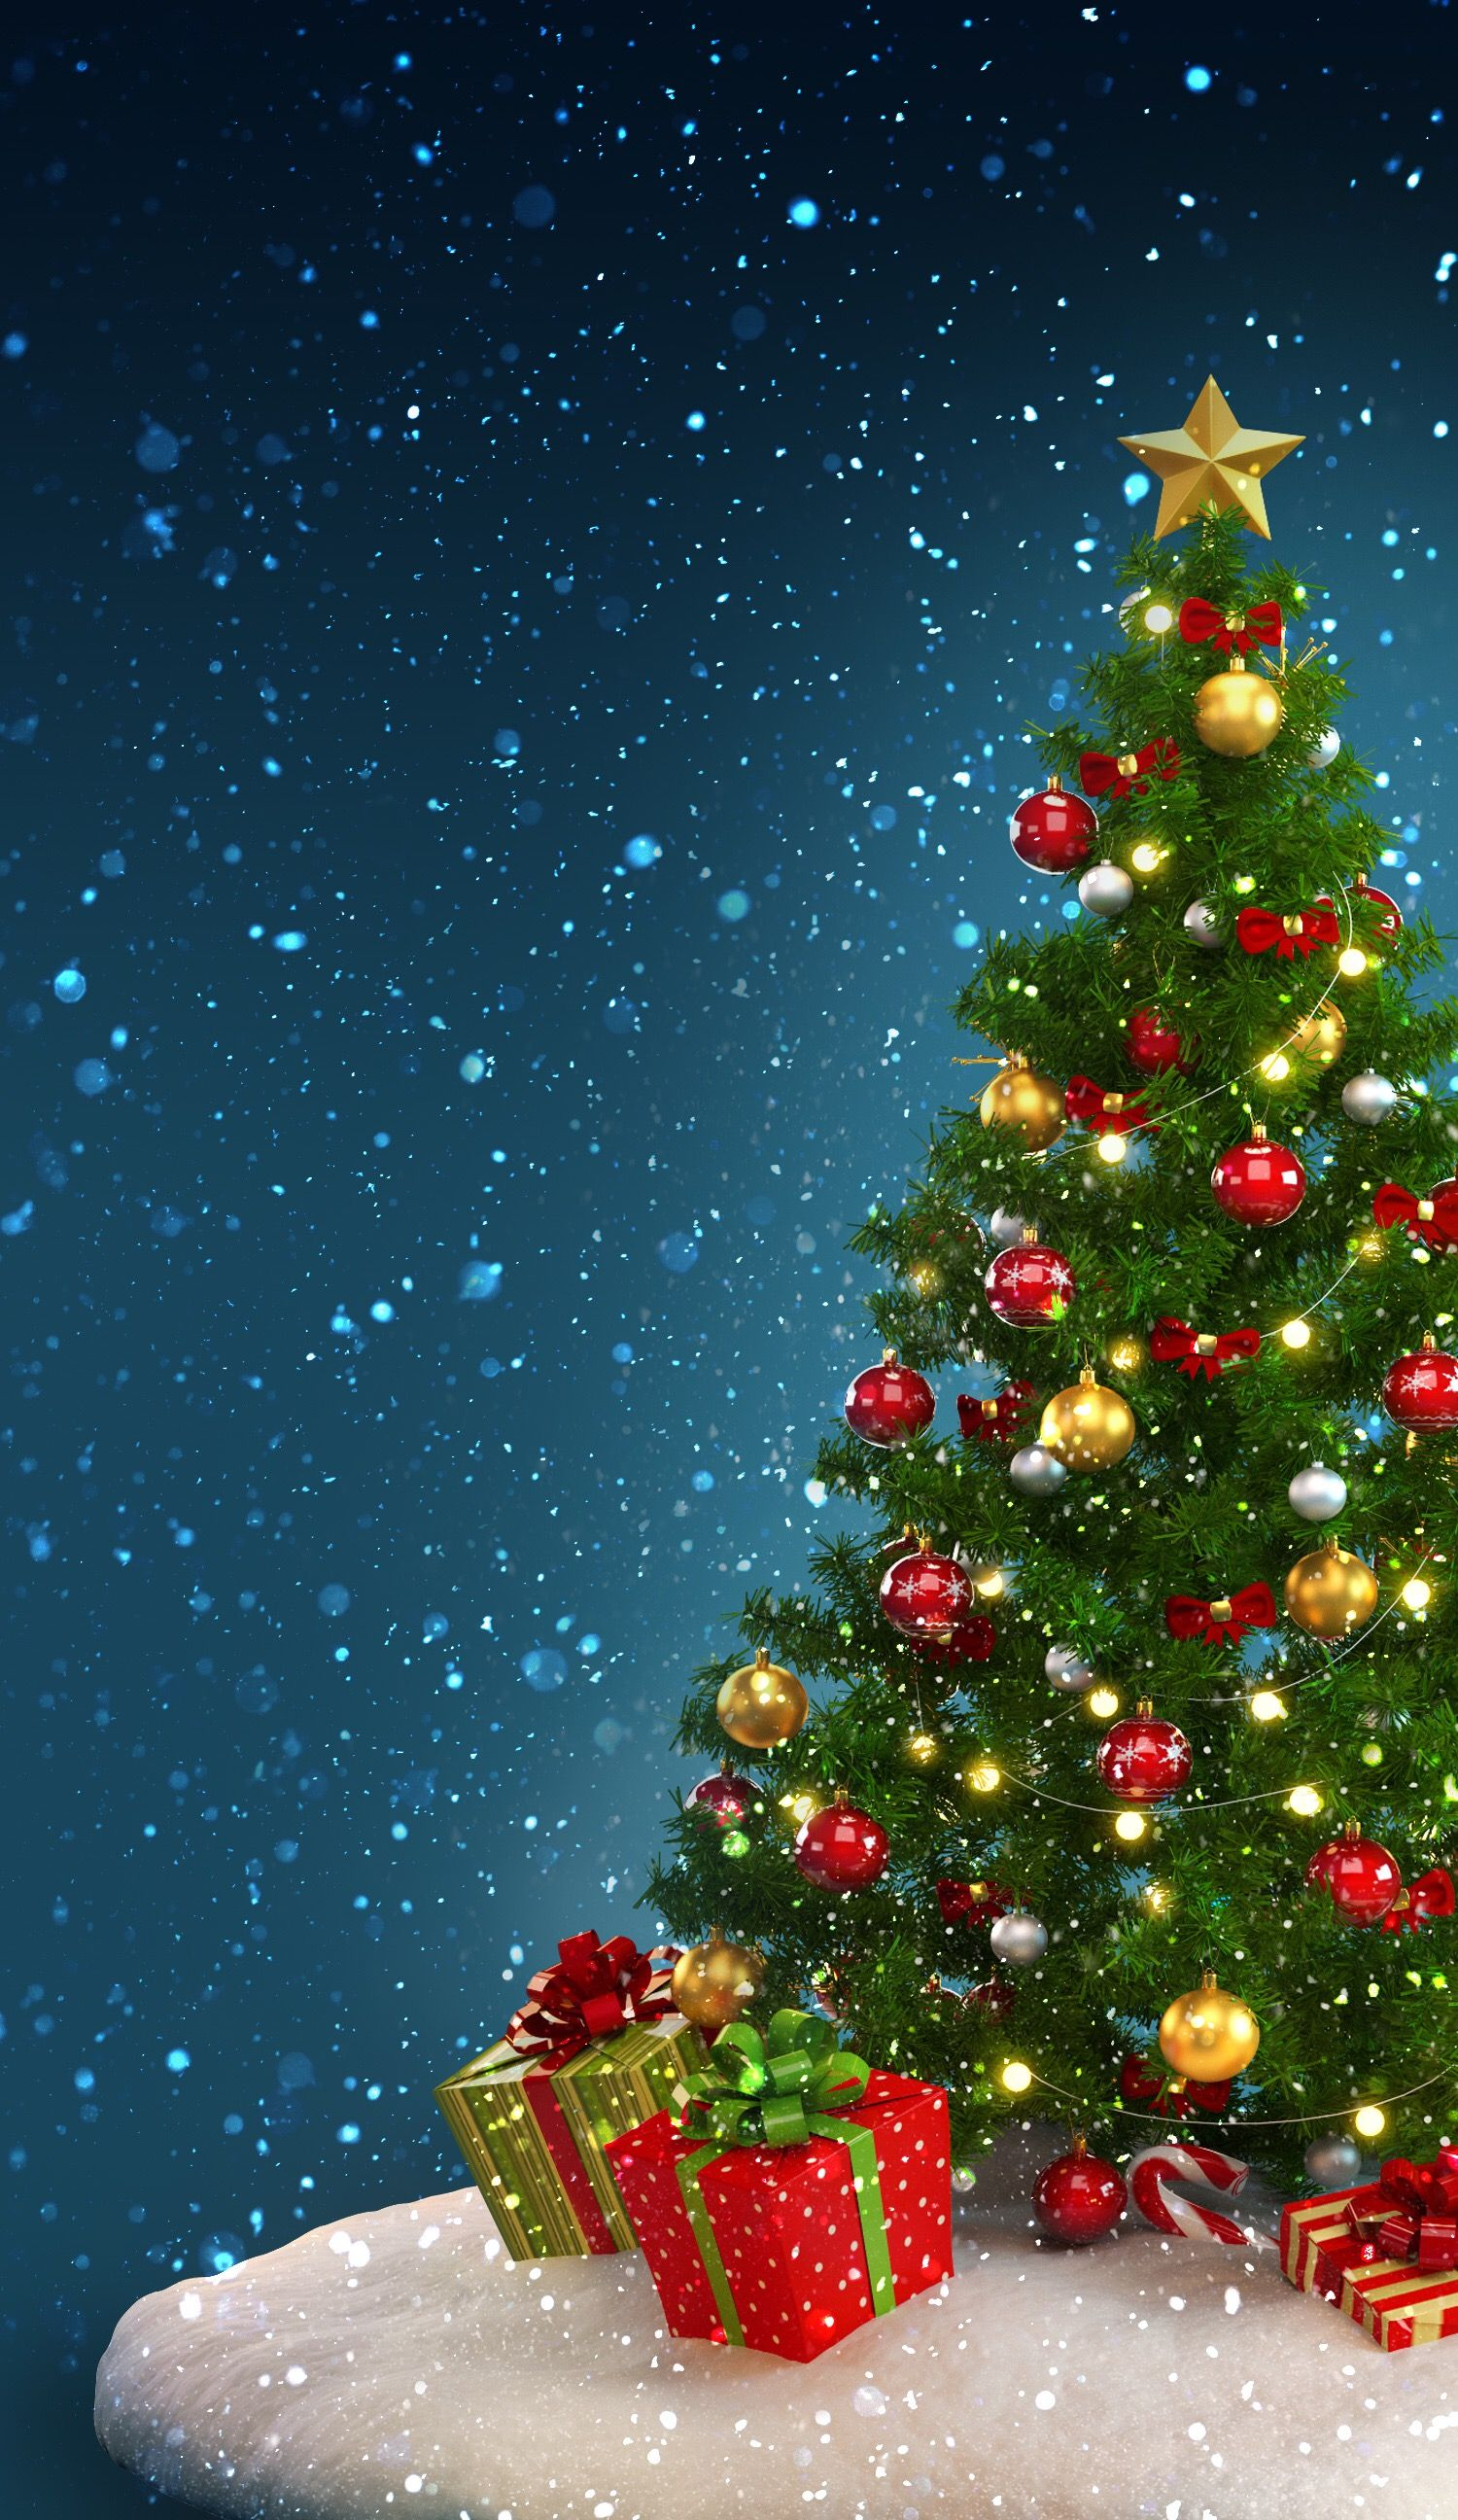 Christmas Wallpaper christmas tree wallpaper Más | Diferentes frases | Christmas tree